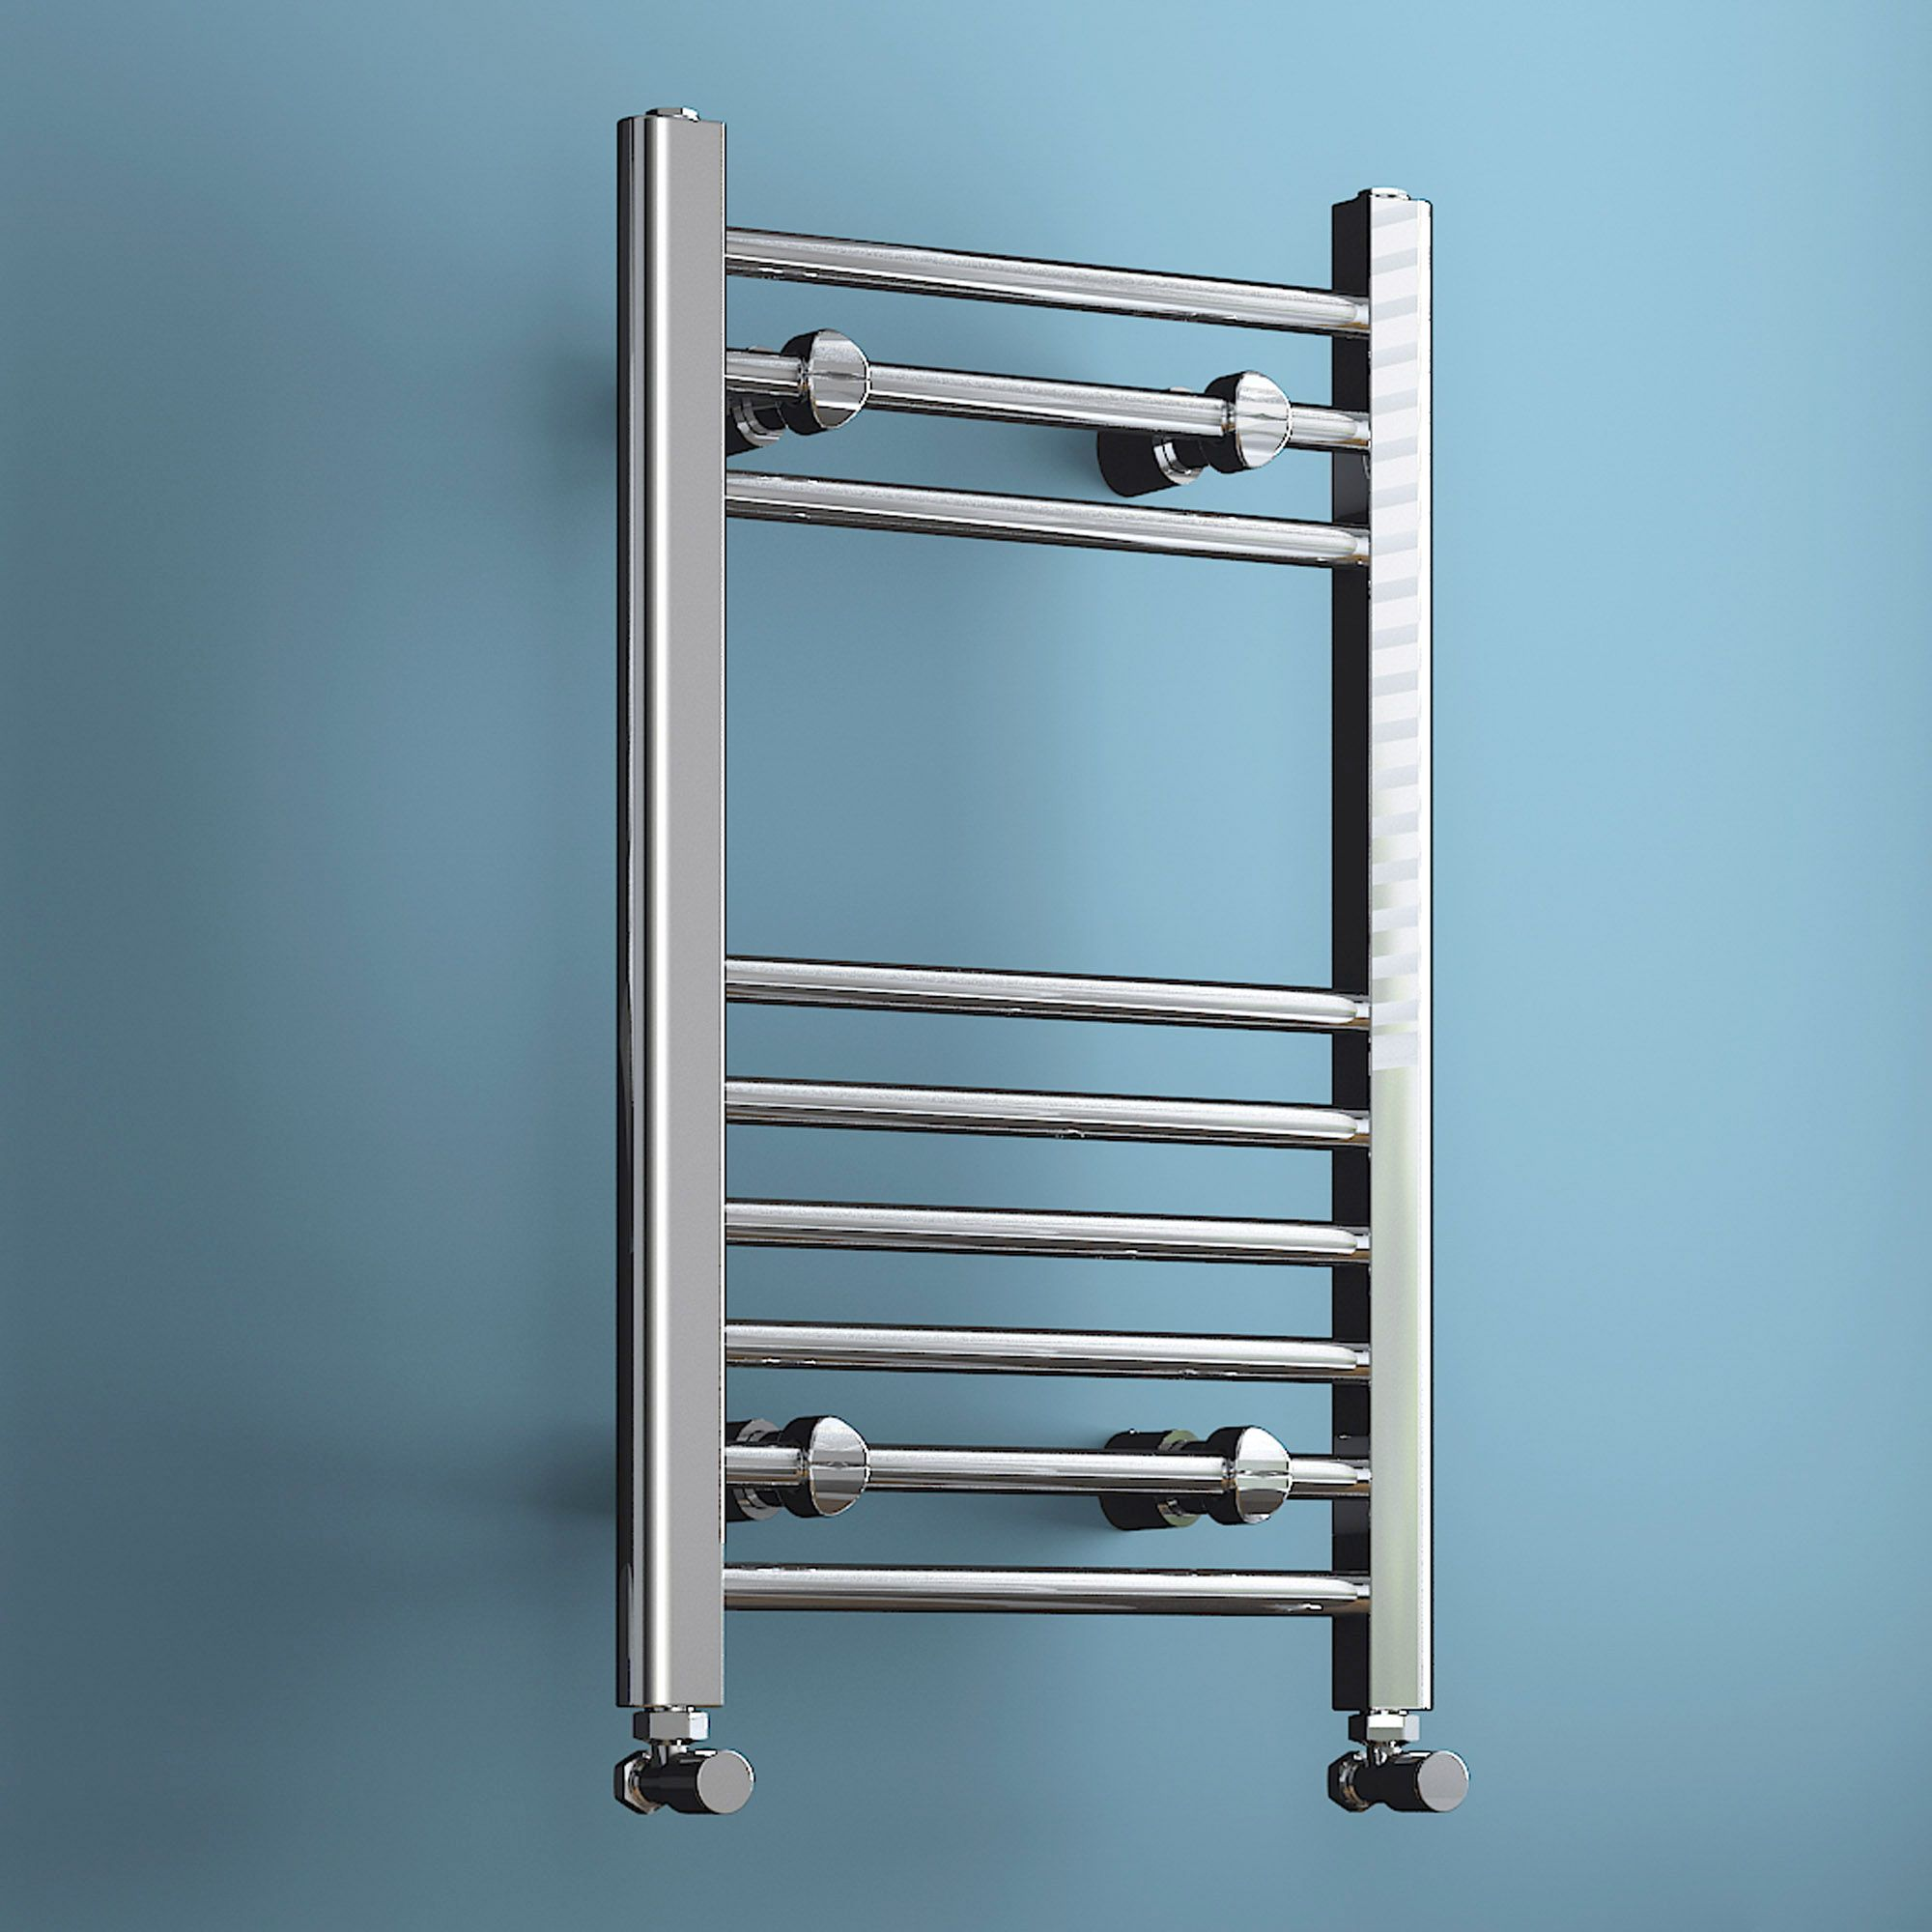 Natasha ladder rail straight modern electric towel radiator in chrome - Are You Looking For The Bathroom Of Your Dreams Stunning At Low Prices With